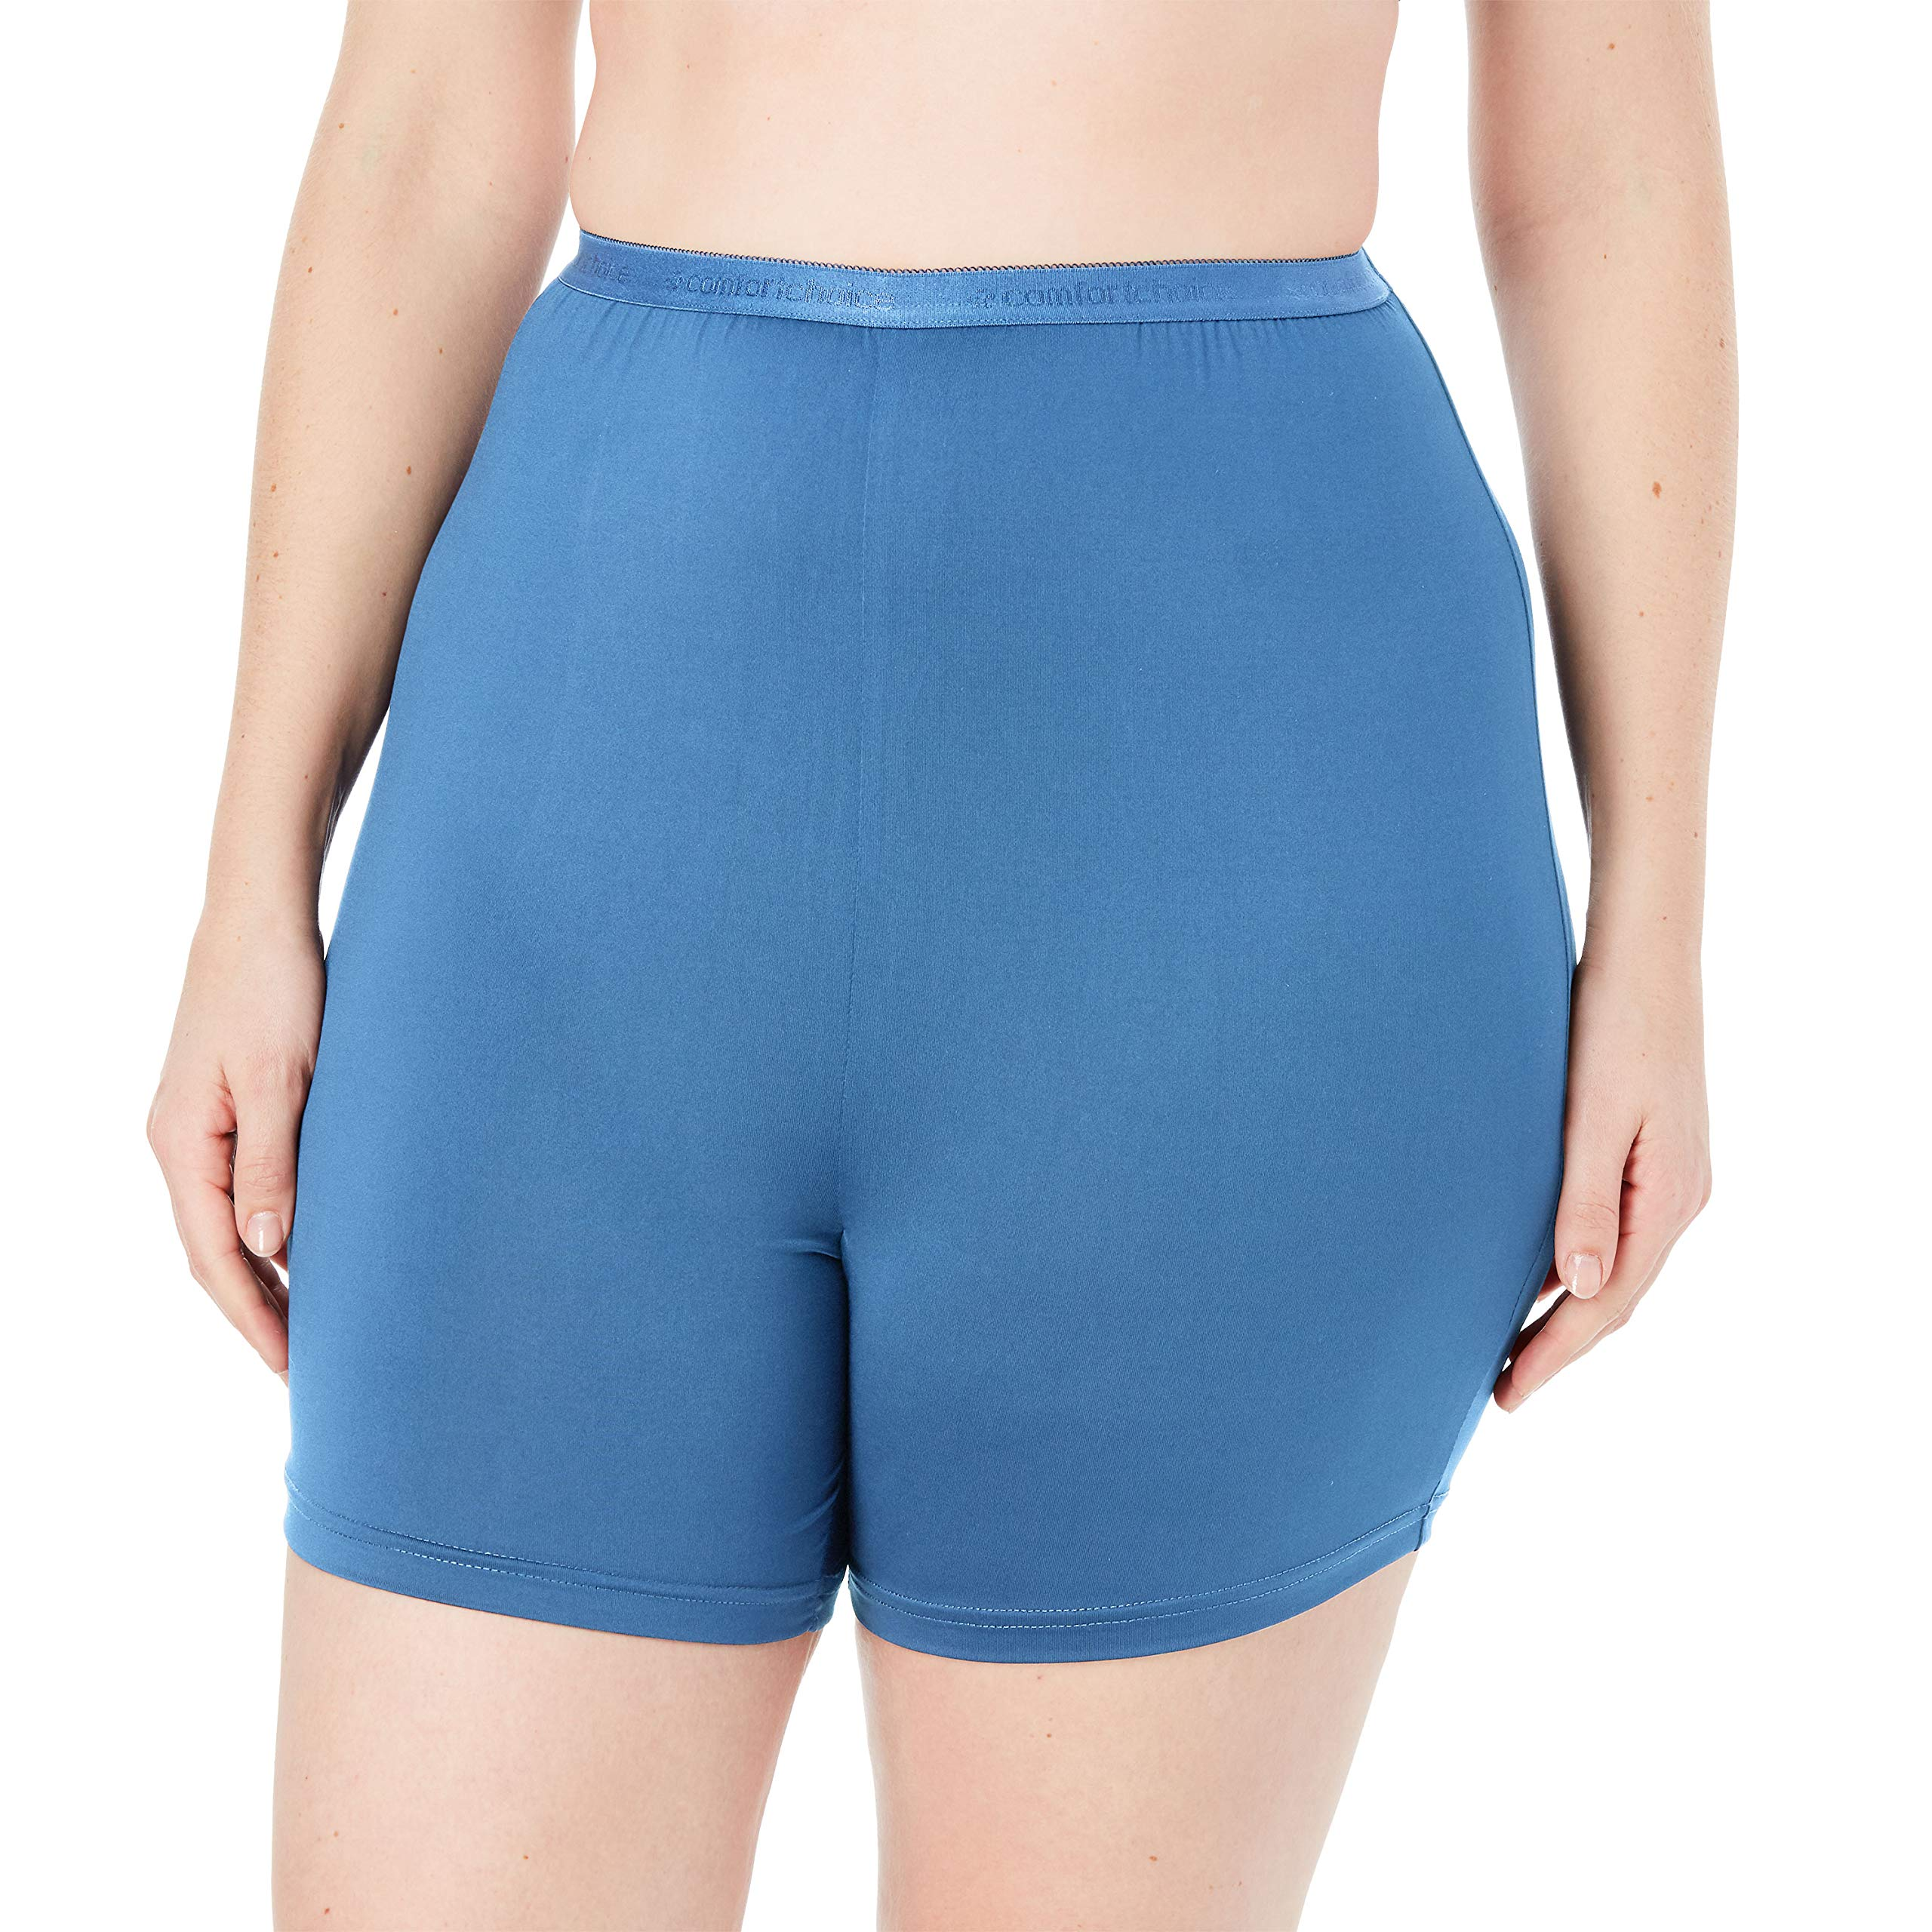 Comfort Choice Women's Plus Size 2-Pack Cooling Boxer